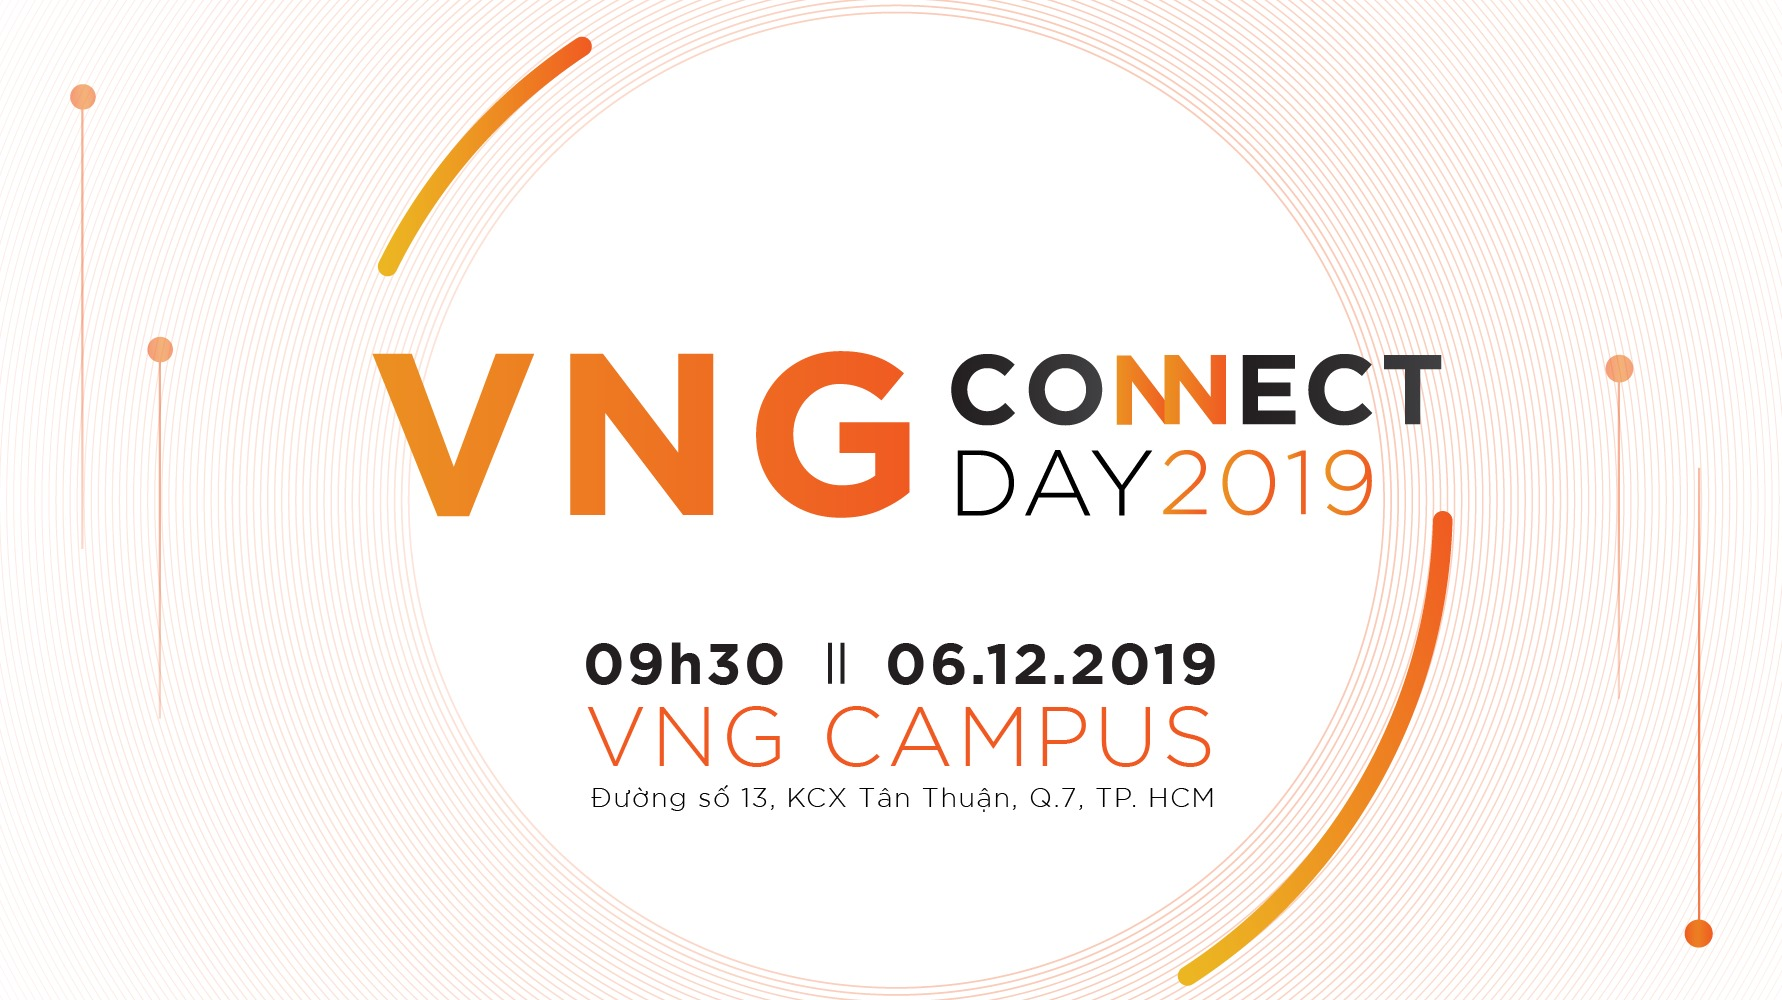 VNG Connect Day 2019